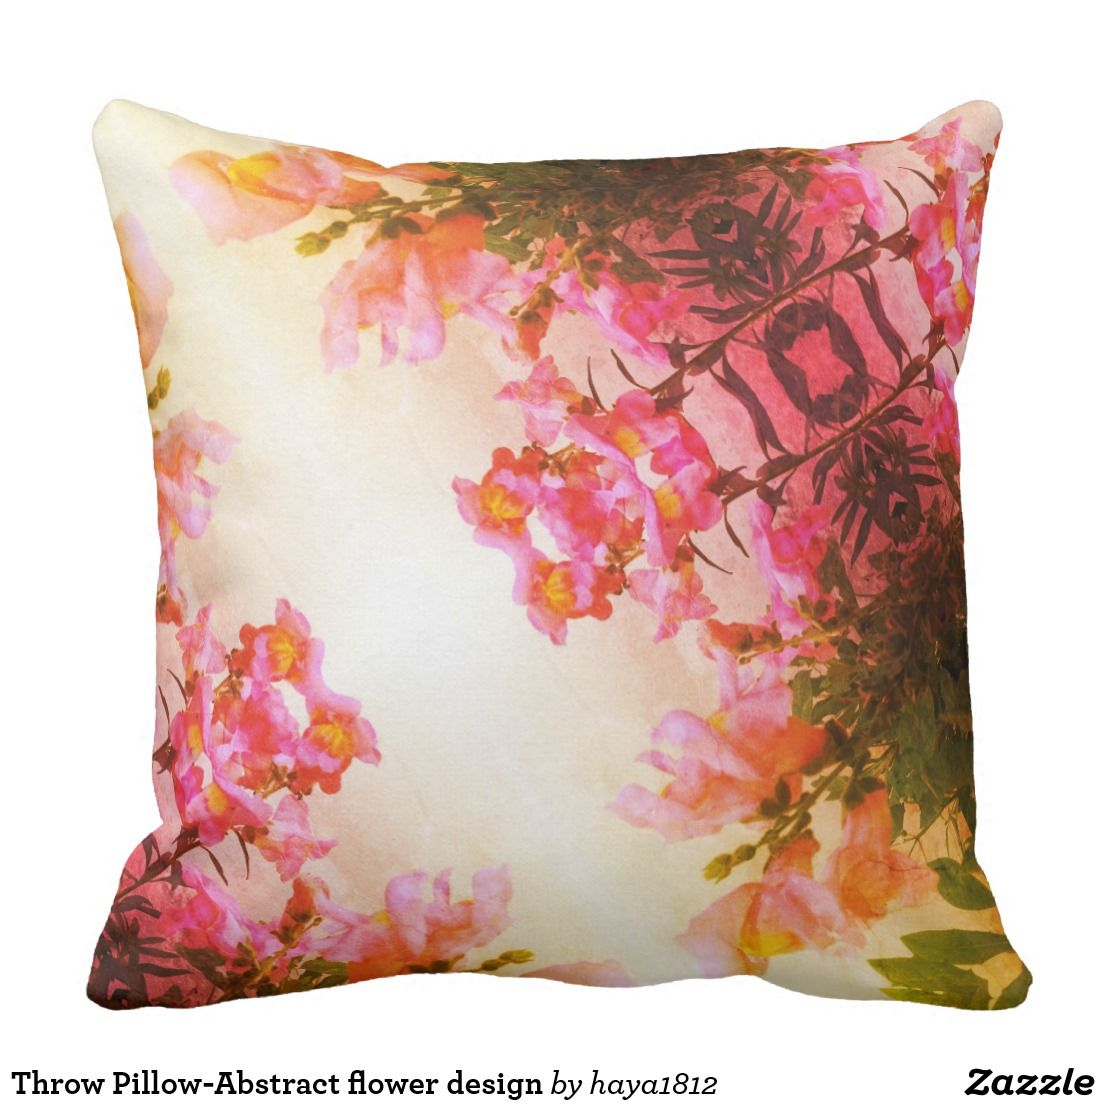 Abstract Floral Designer Pillowcases by